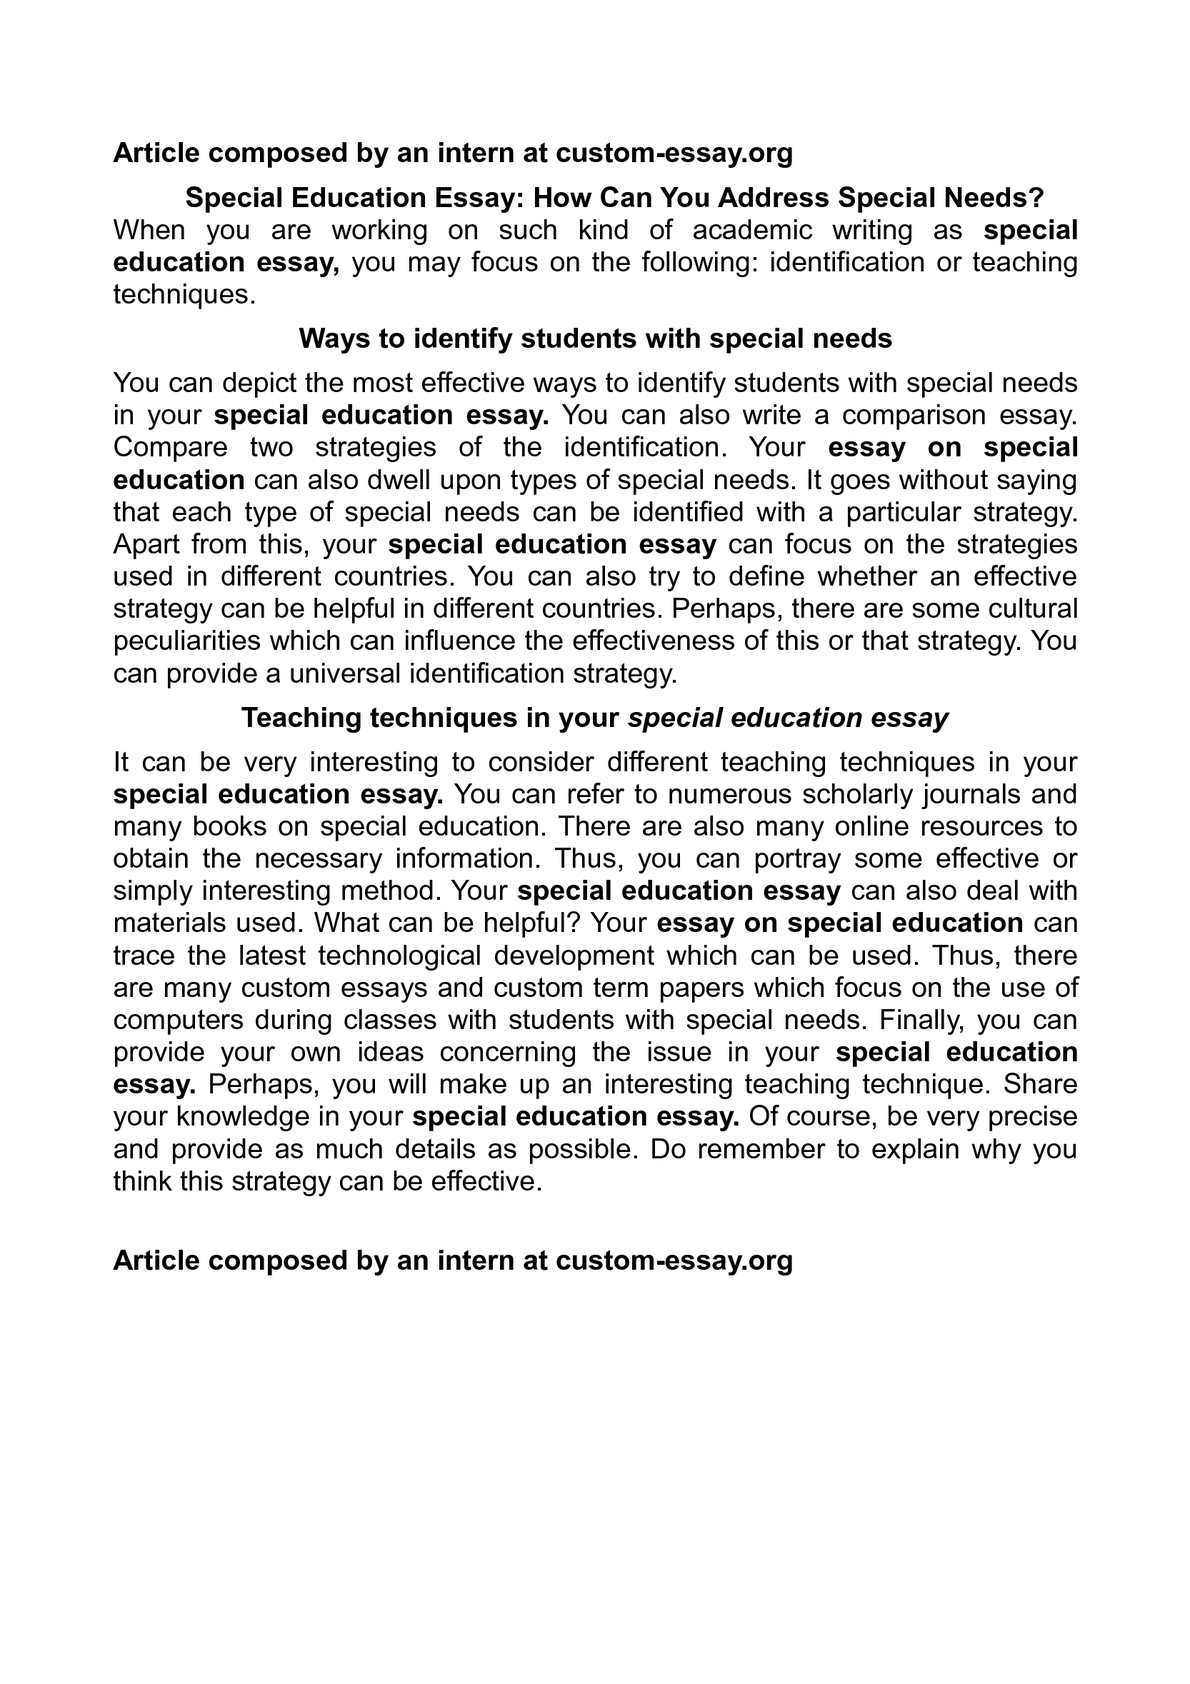 017 Interesting Research Paper Topics About Education Special Reform Essay Teacher Interview Examples Exceptional Elementary Ideas Early Childhood Full